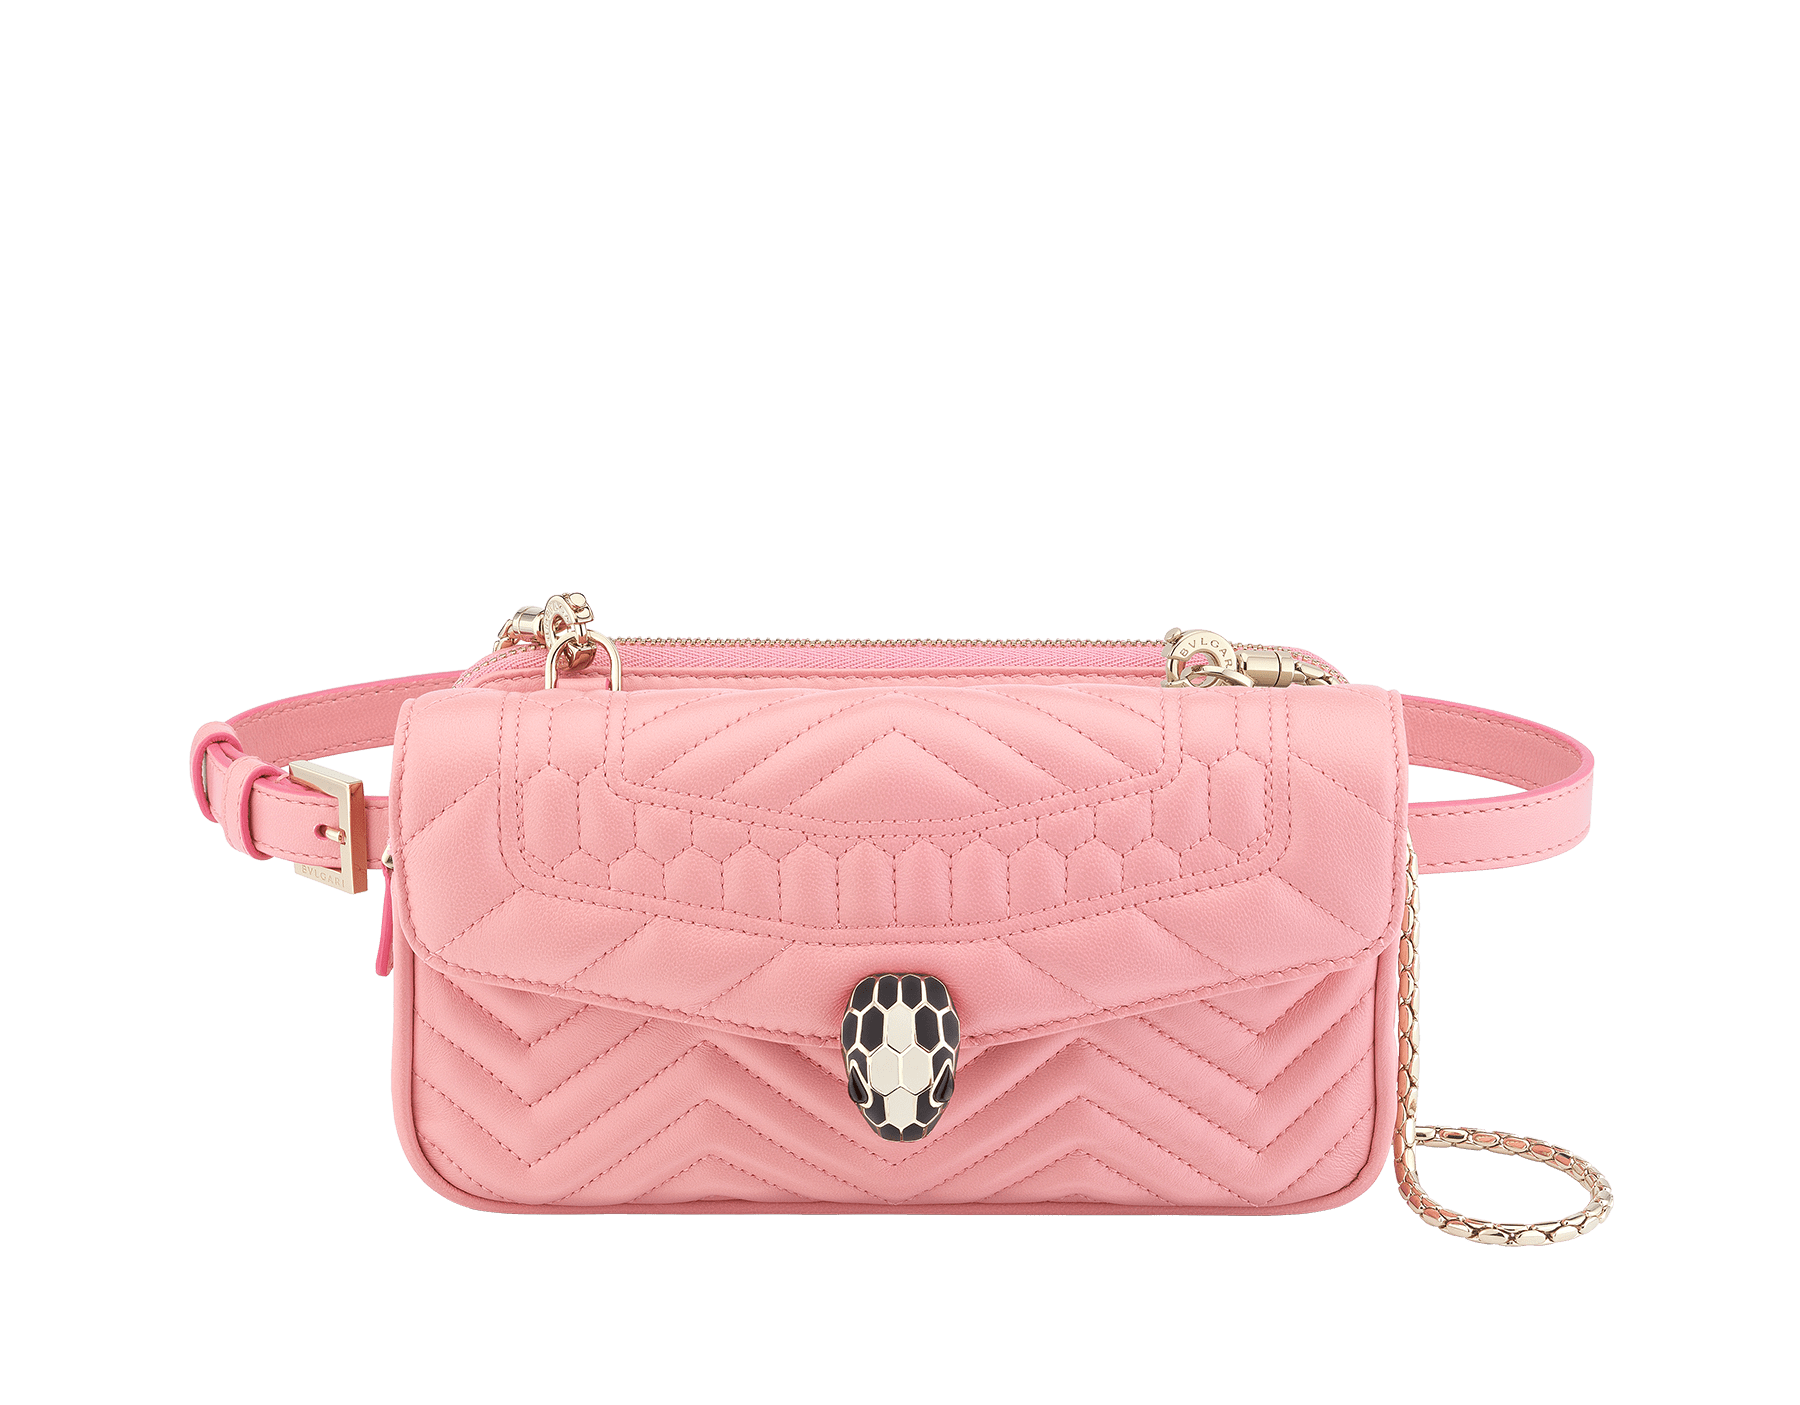 Belt Bag Serpenti Forever in candy quartz quilted chevron nappa leather. Hardware in light gold plated brass and snakehead closure in matte black and white agate enamel, with eyes in black onyx. 287853 image 1